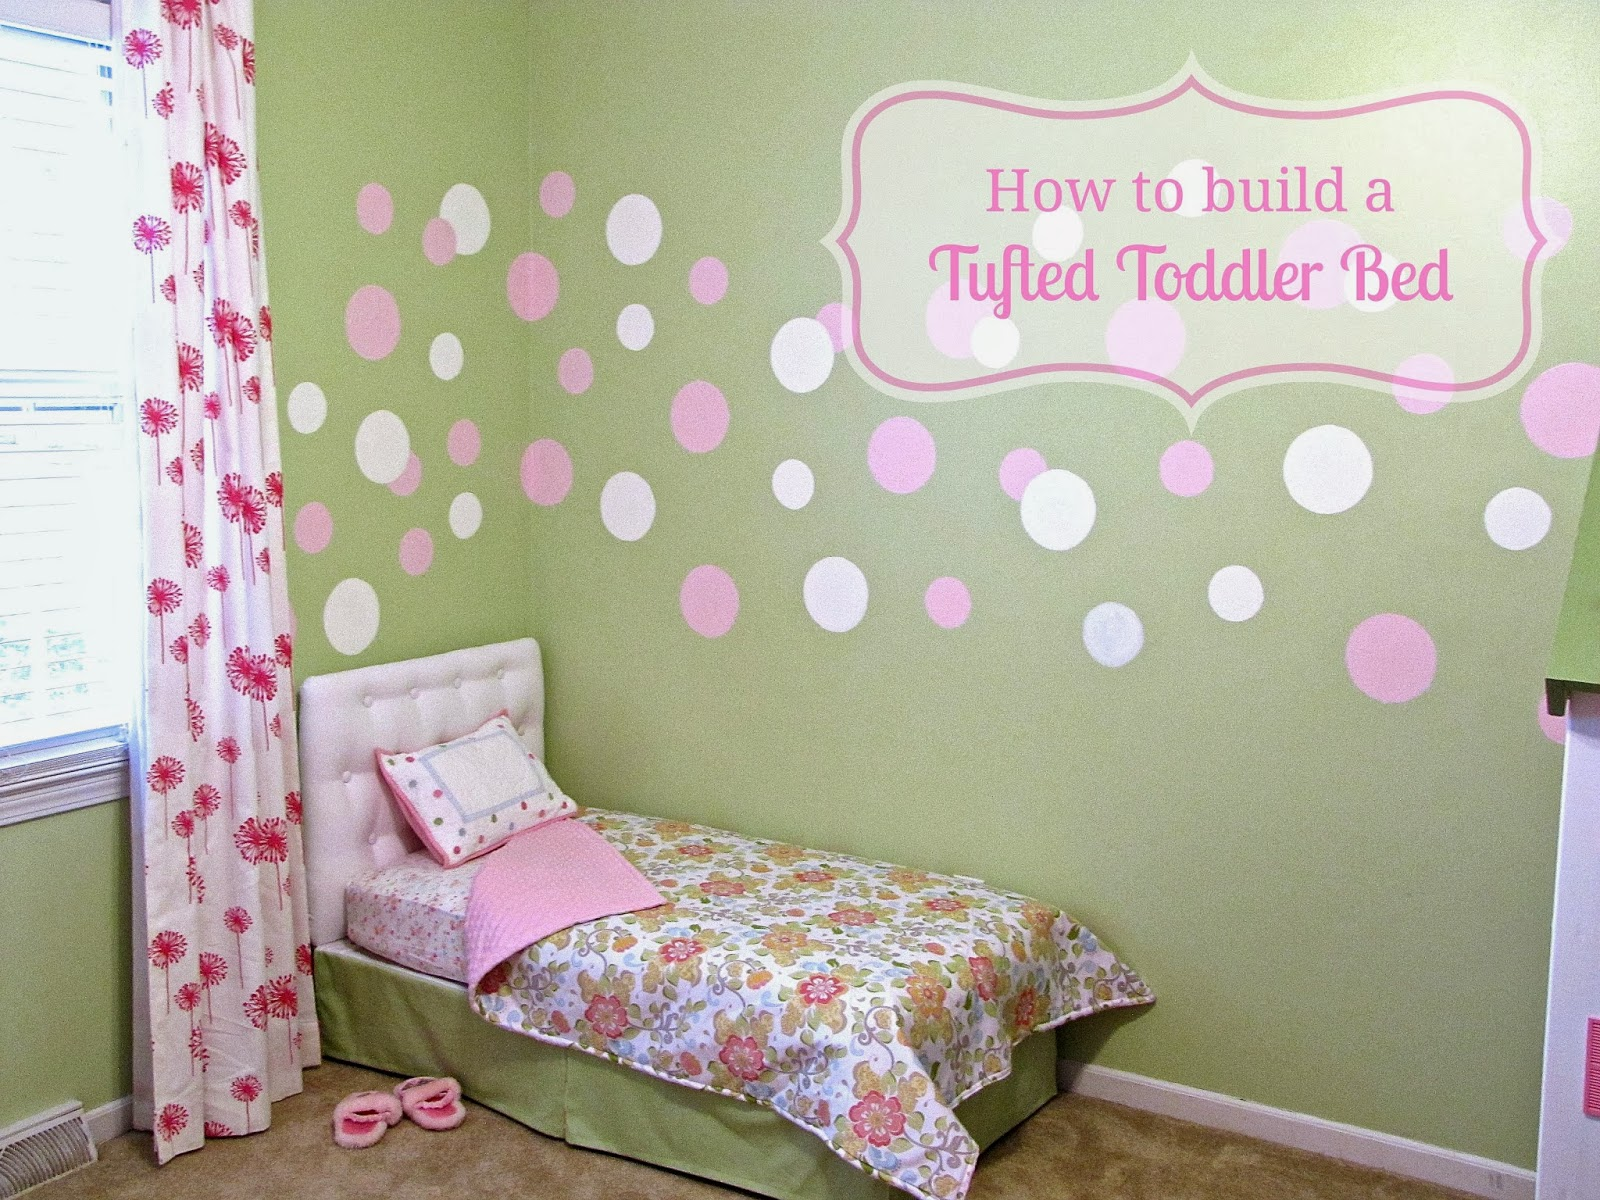 Tufted Toddler Bed